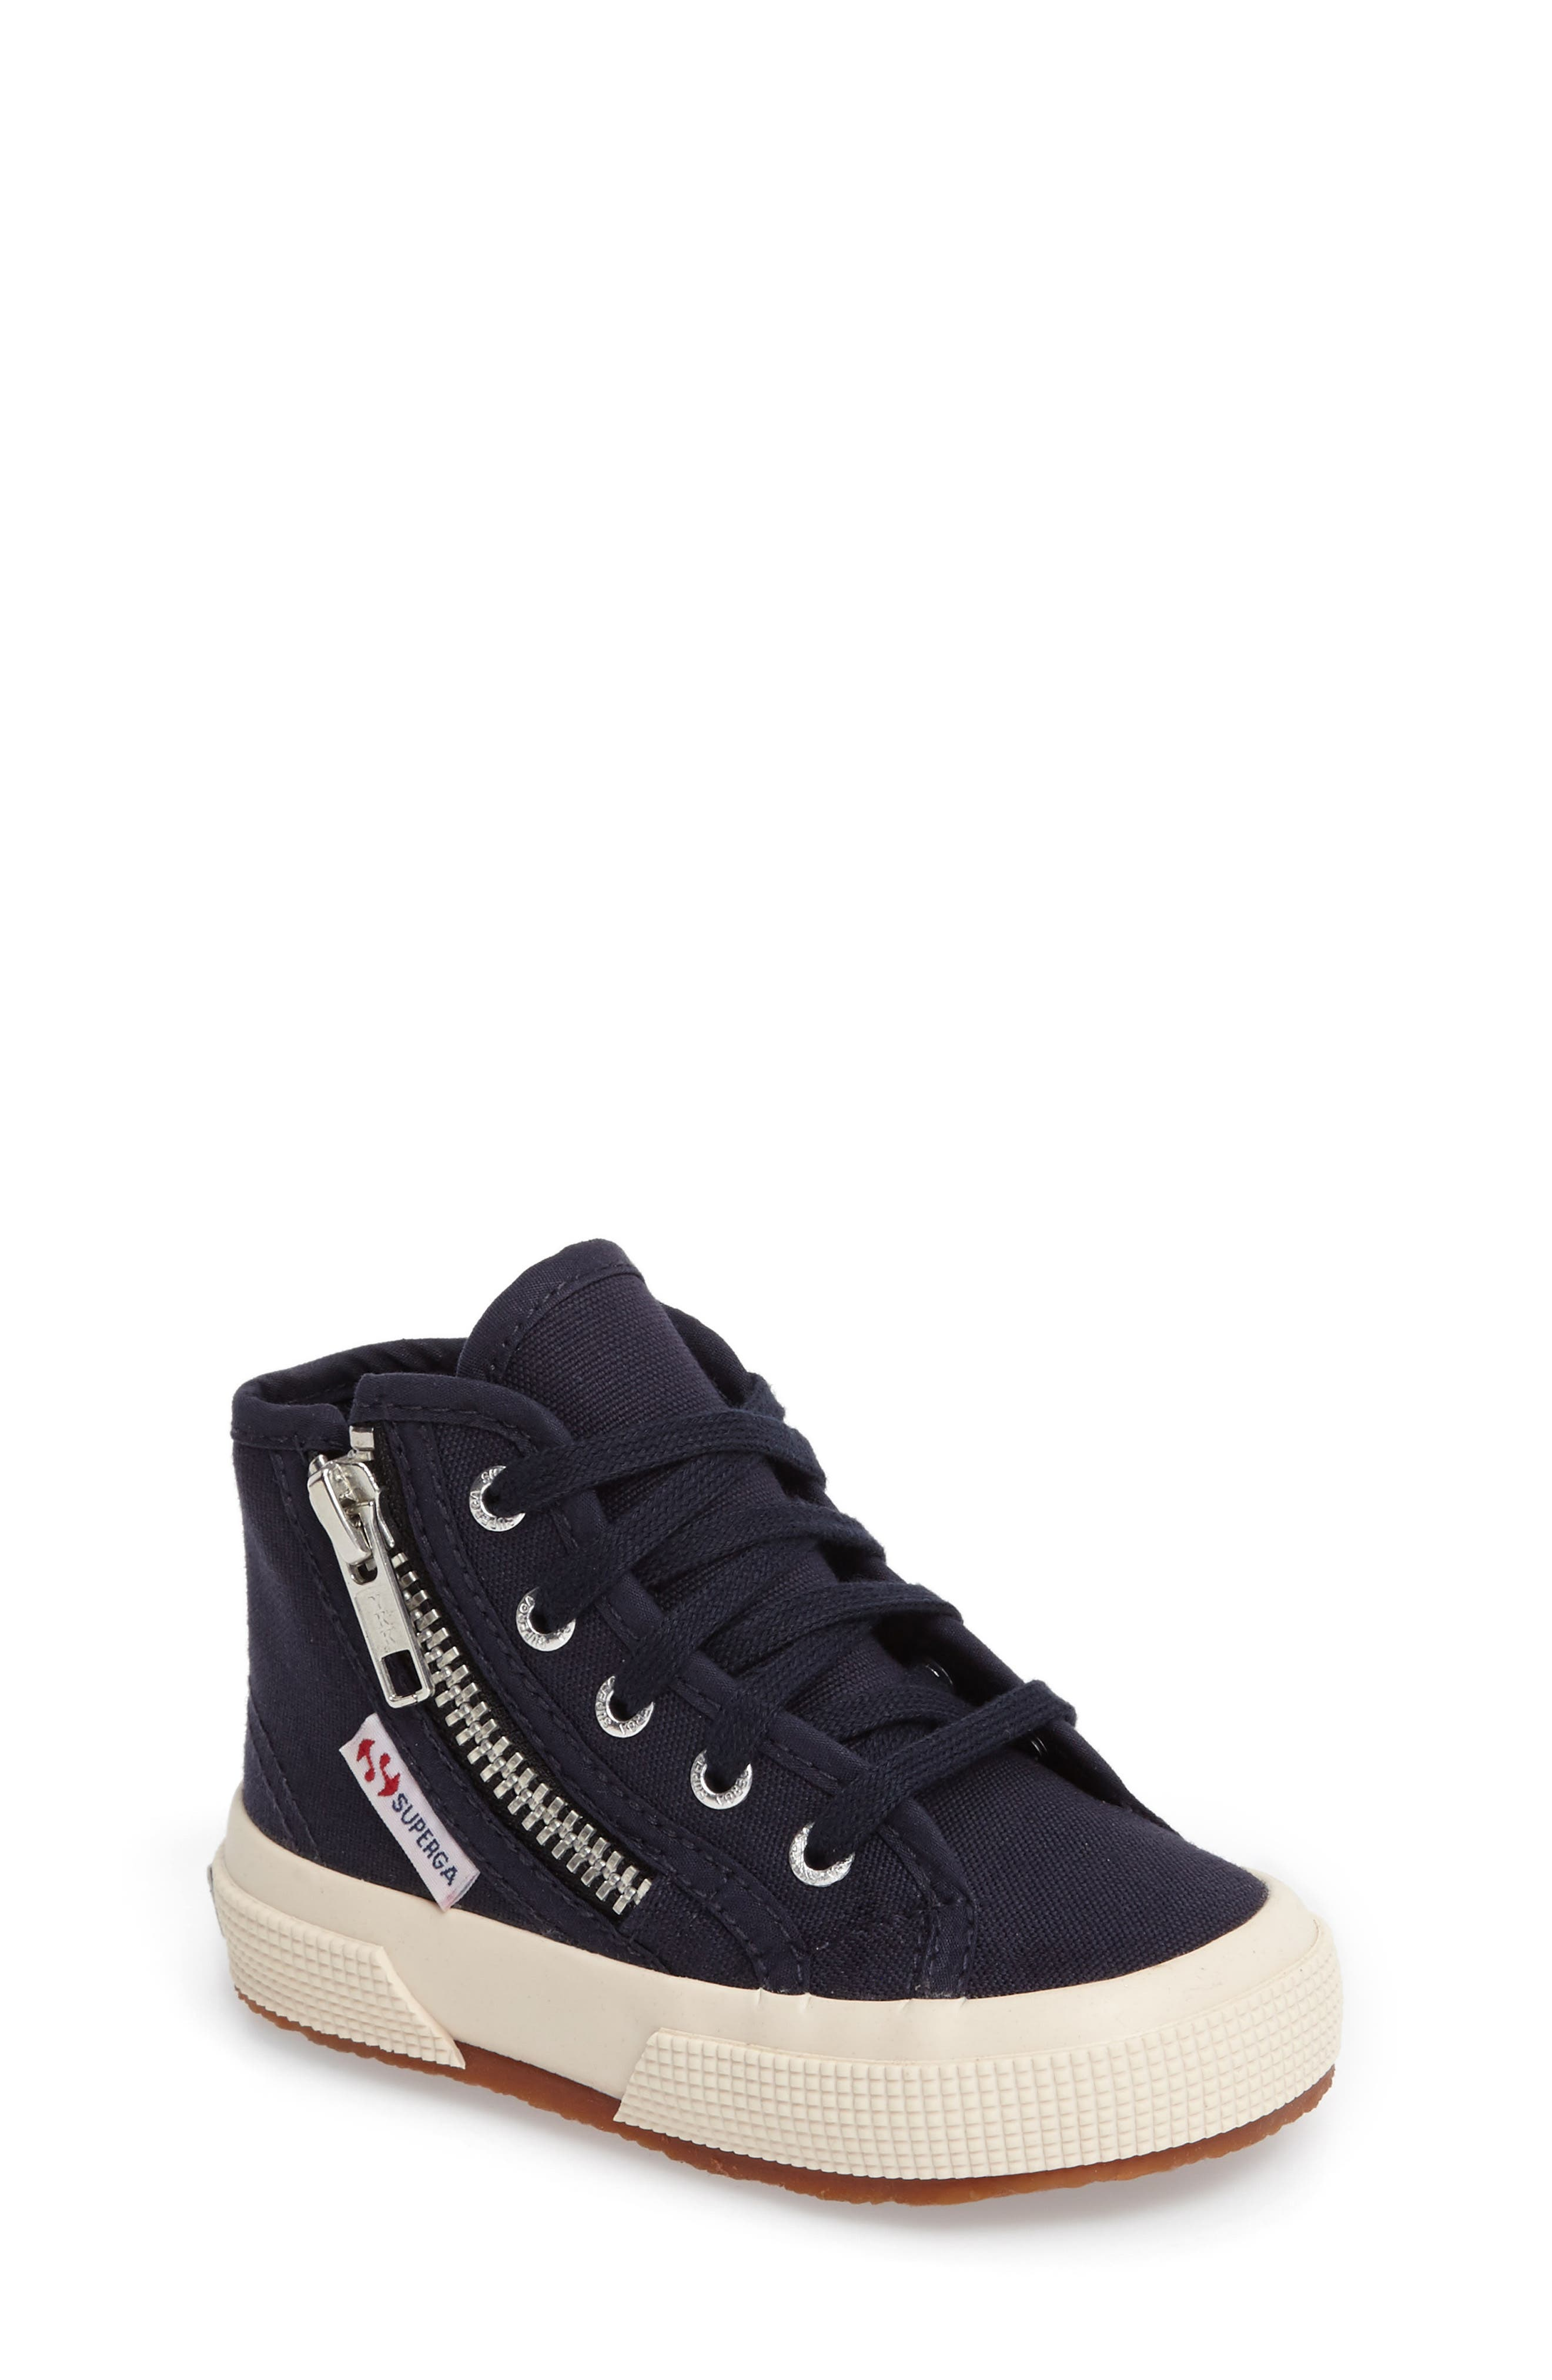 Superga Zip High Top Sneaker (Walker, Toddler & Little Kid)